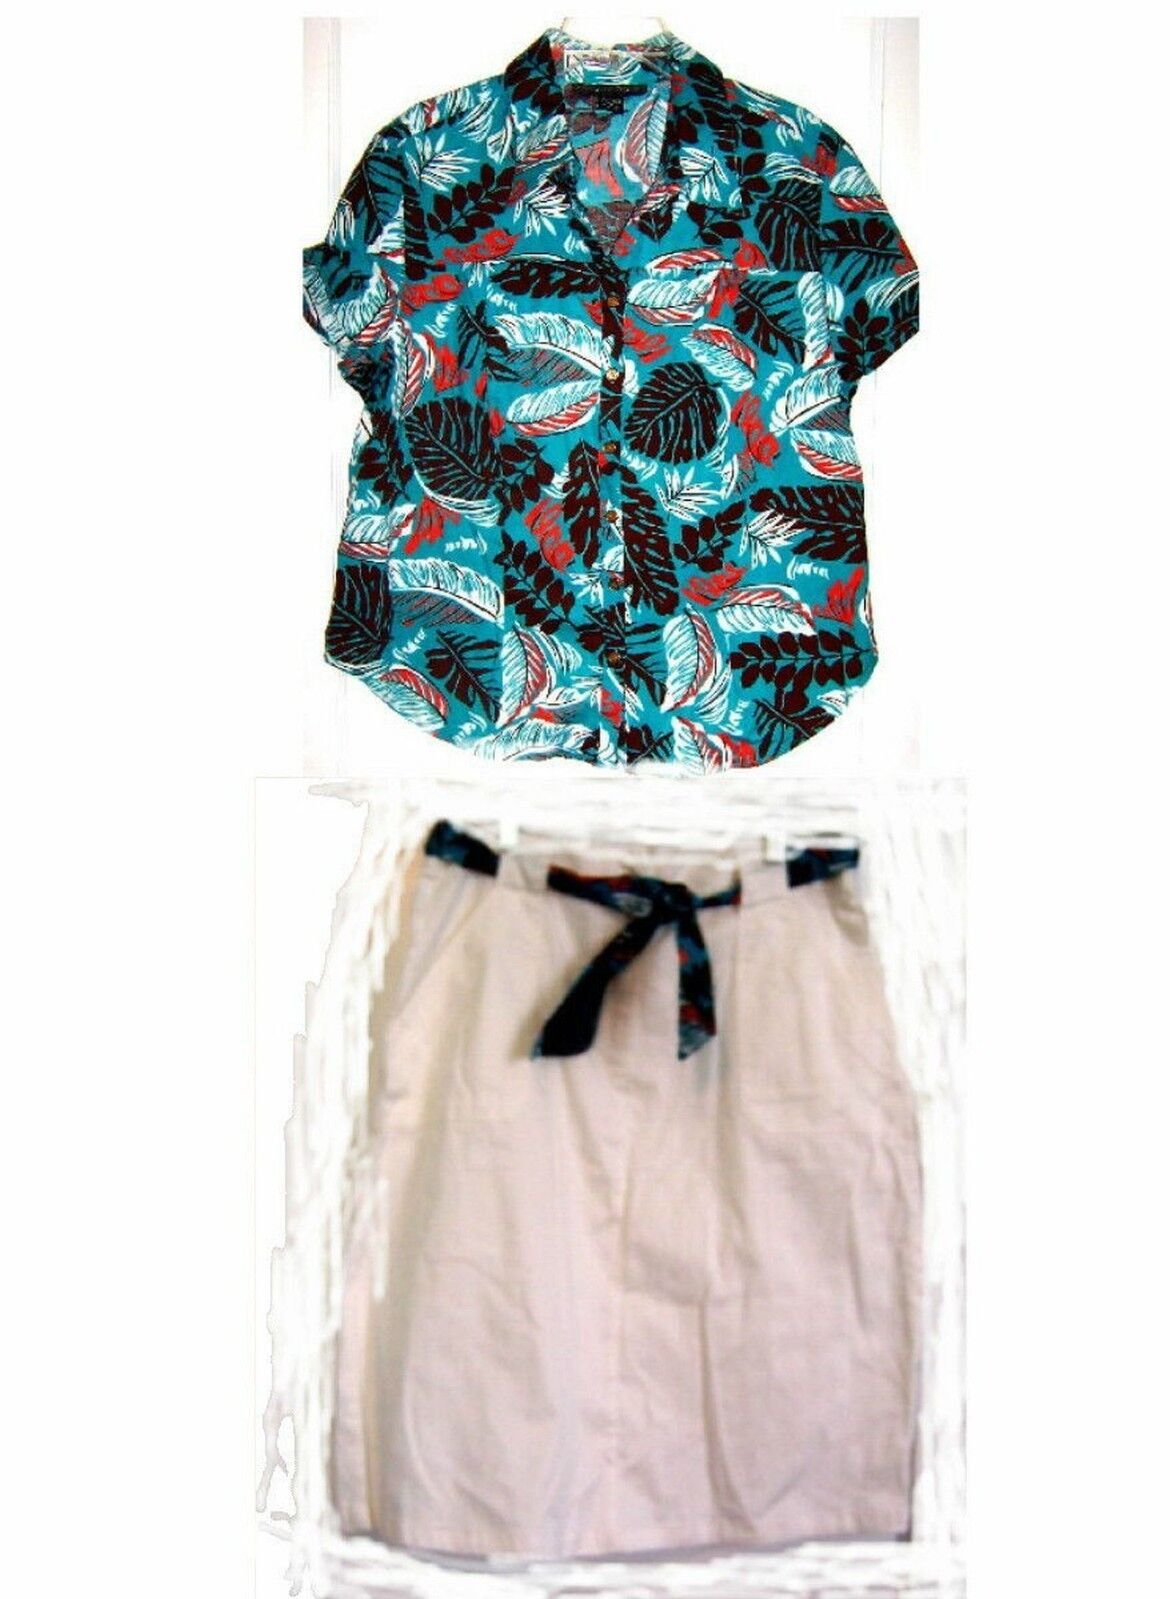 Mirror Image White Skirt w Leaf Print Belt & Top Sz 1X Top L Ski